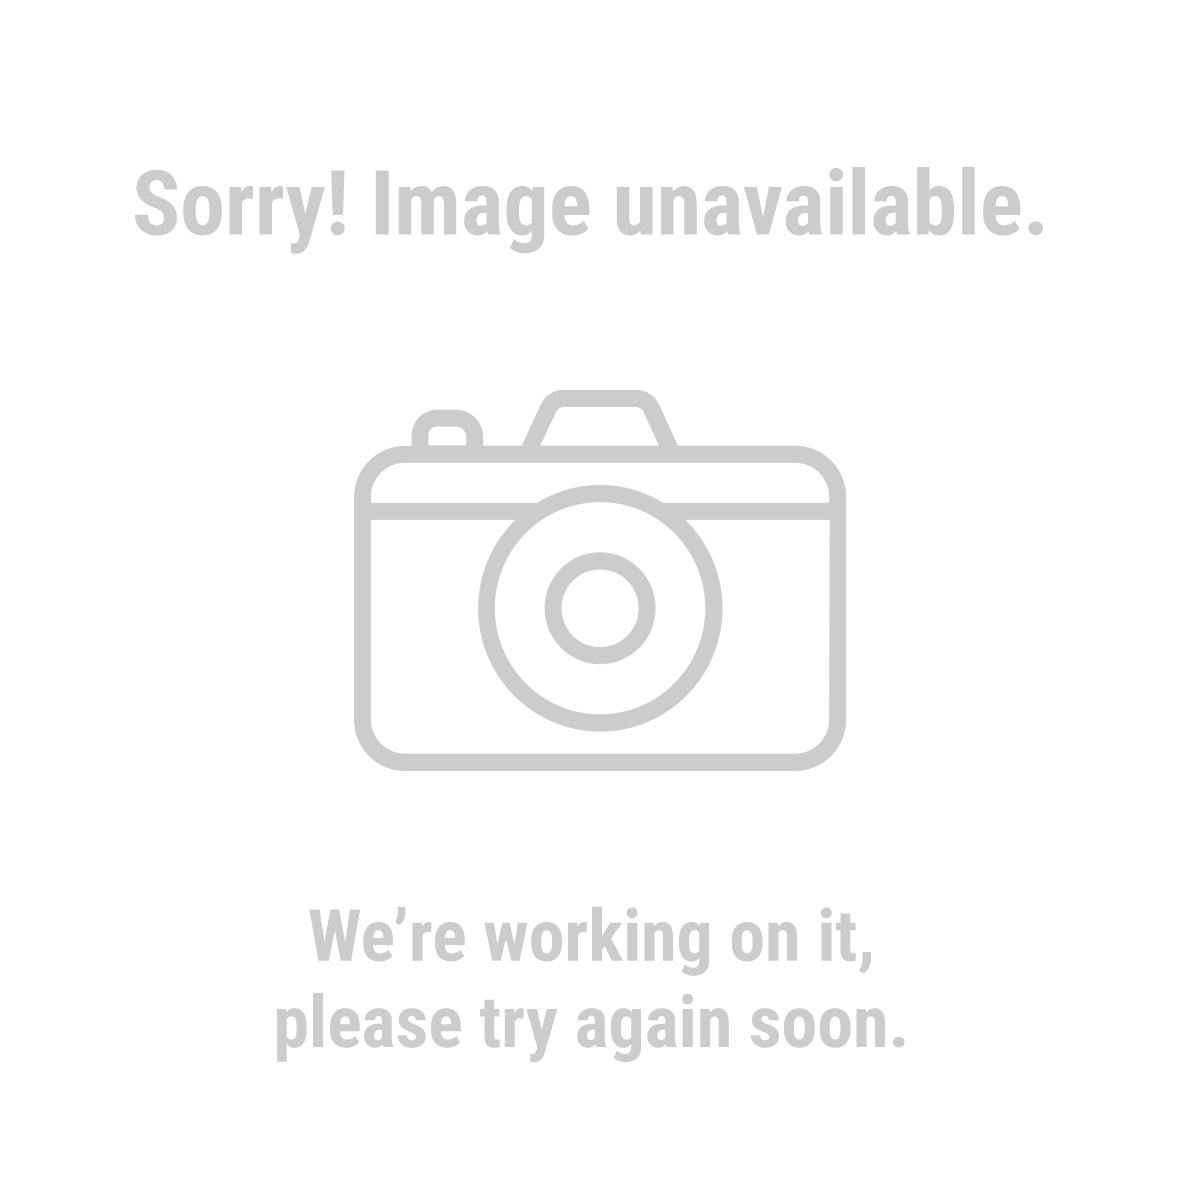 Haul-Master® 66244 2.27 Cubic Ft. Steel Trailer Tongue Box